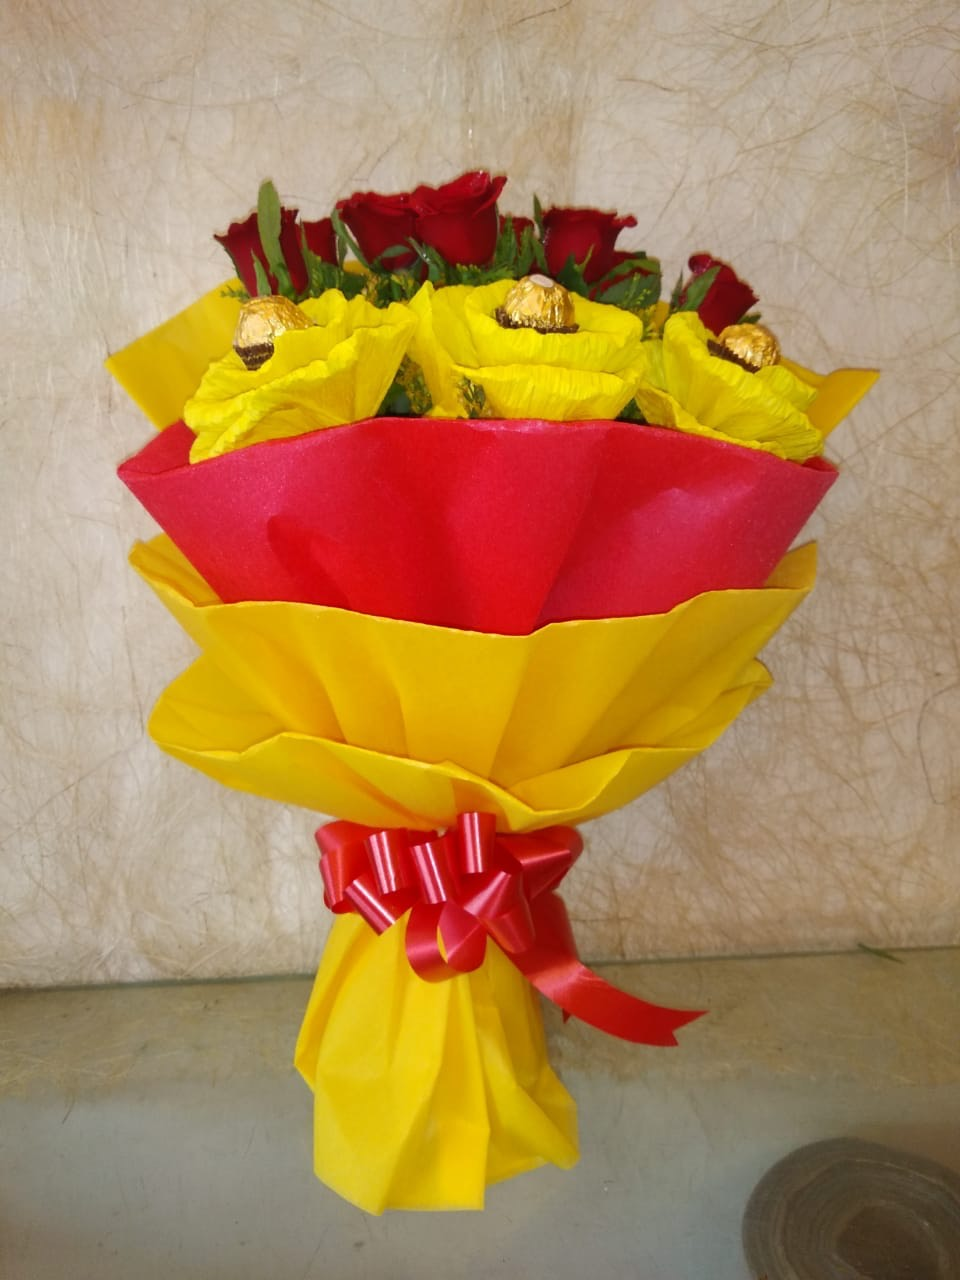 send flower Alaknanda DelhiRed Roses Ferrero Rocher Bunch